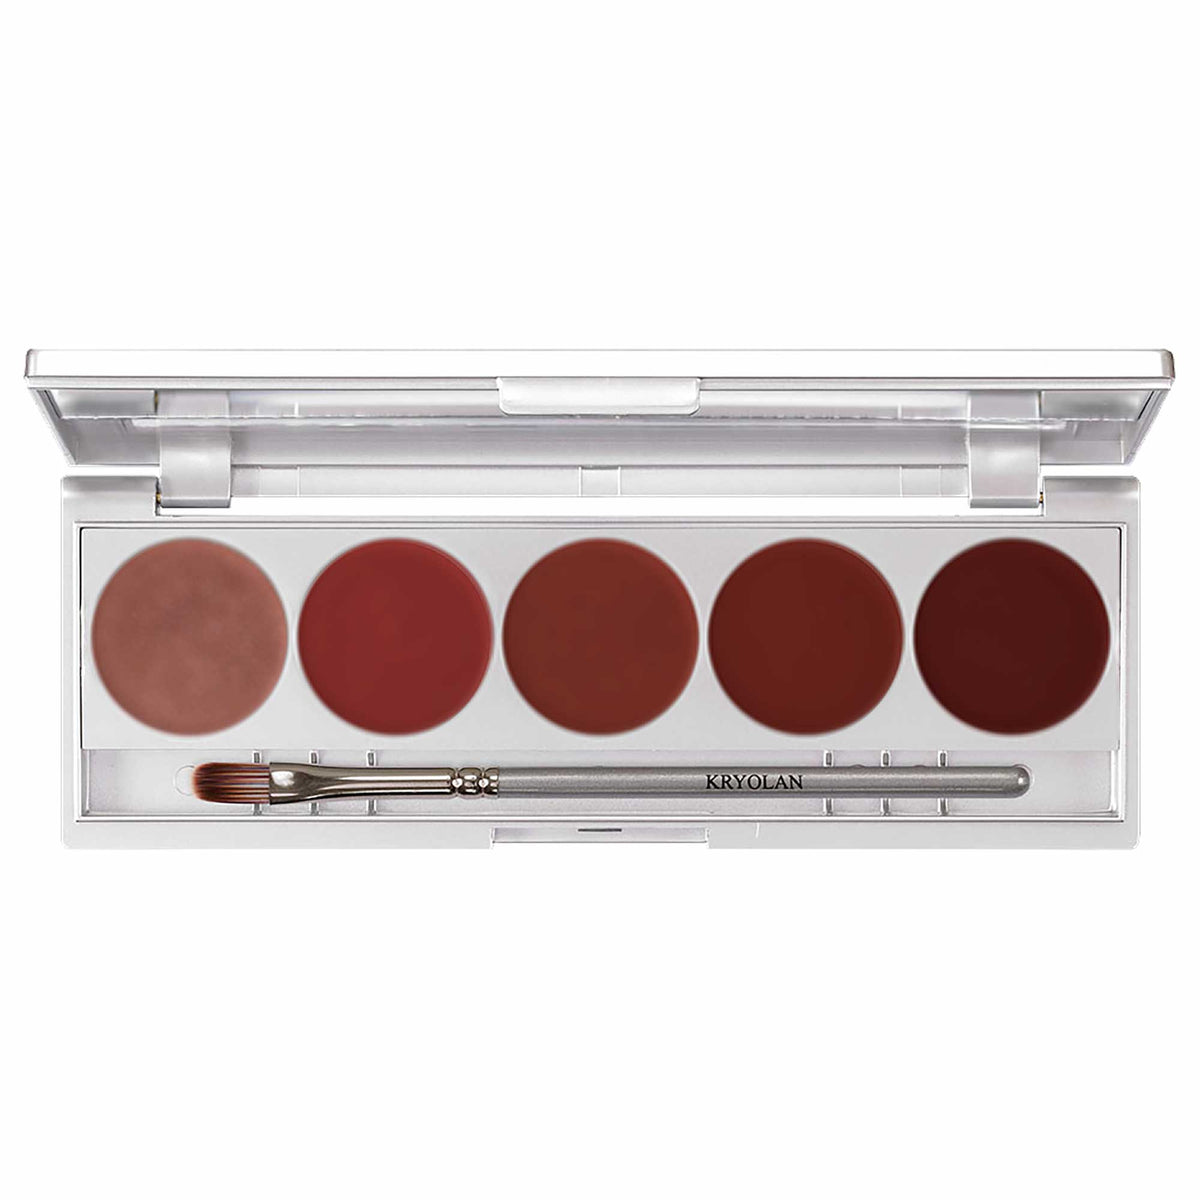 Kryolan Cream Blusher 5 Palette - Beauty